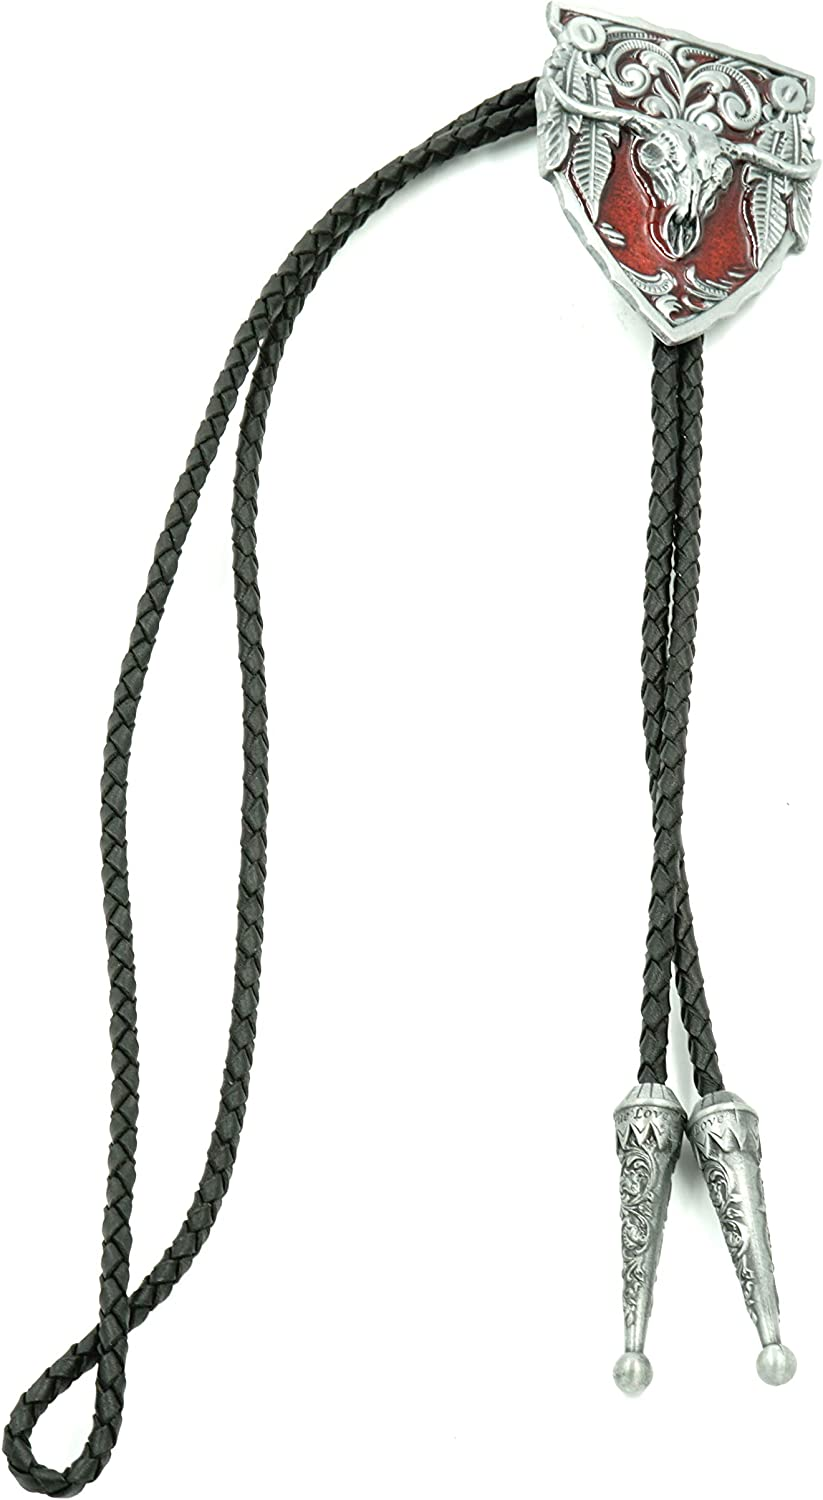 Long Horn Bull Cheap SALE Cheap super special price Start Red Enamel Bolo Leather Neck Tie Western